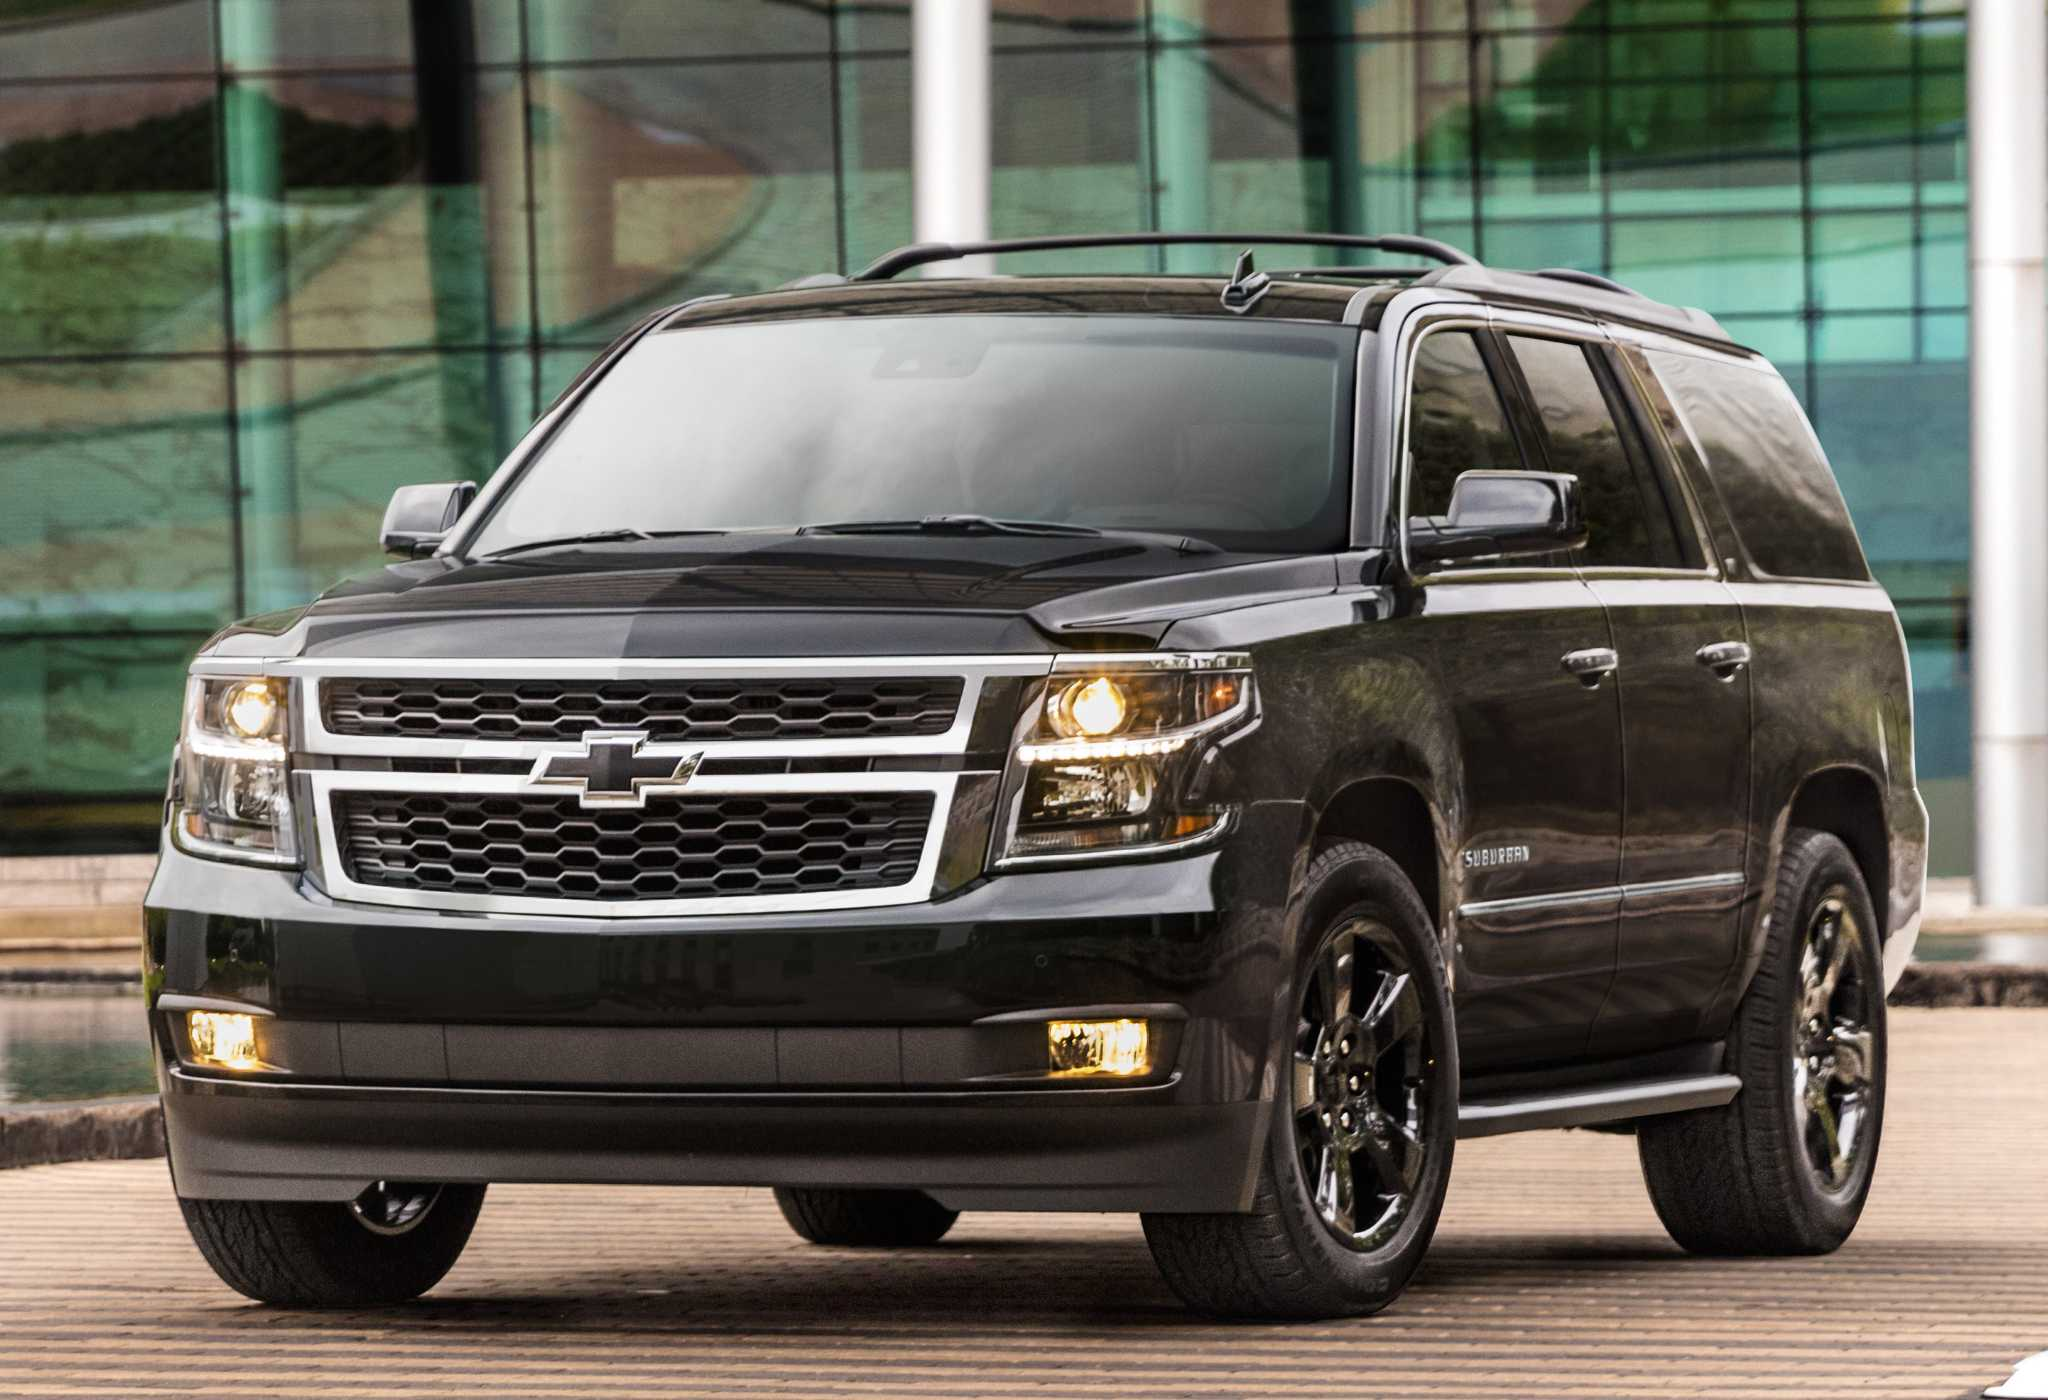 2018 Suburban SUVs looks great with Z71 Midnight Edition package